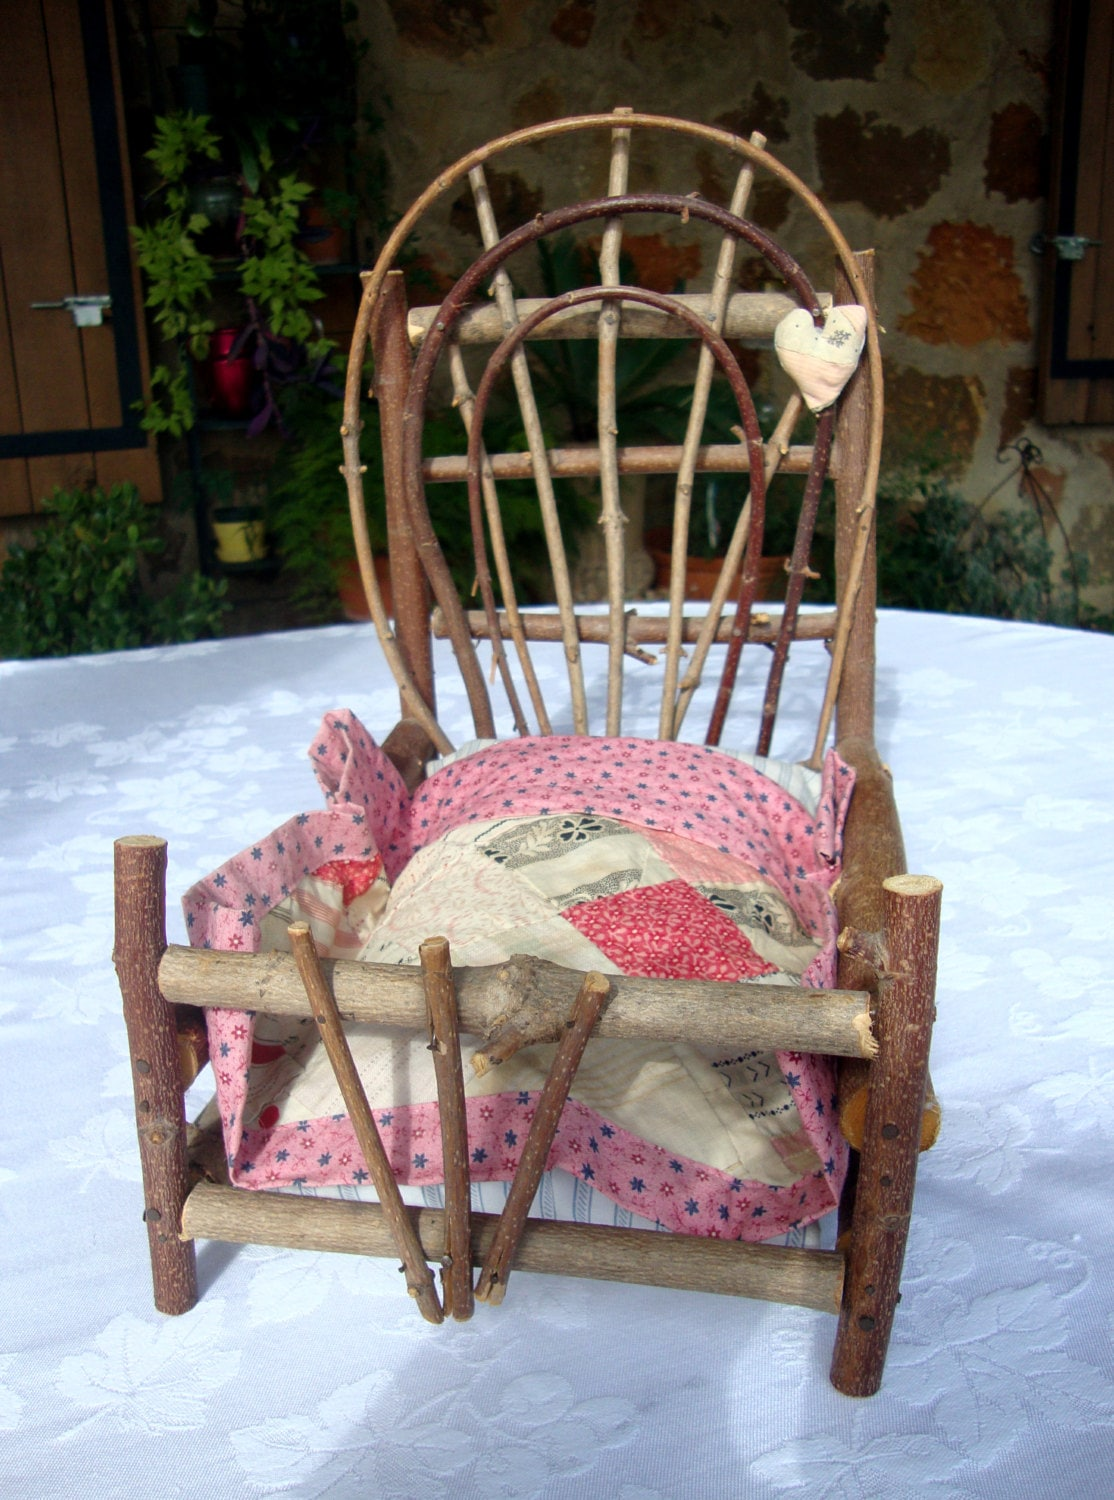 Mattress And Quilt Doll House Dollhouse Furniture Fairy Faery Garden